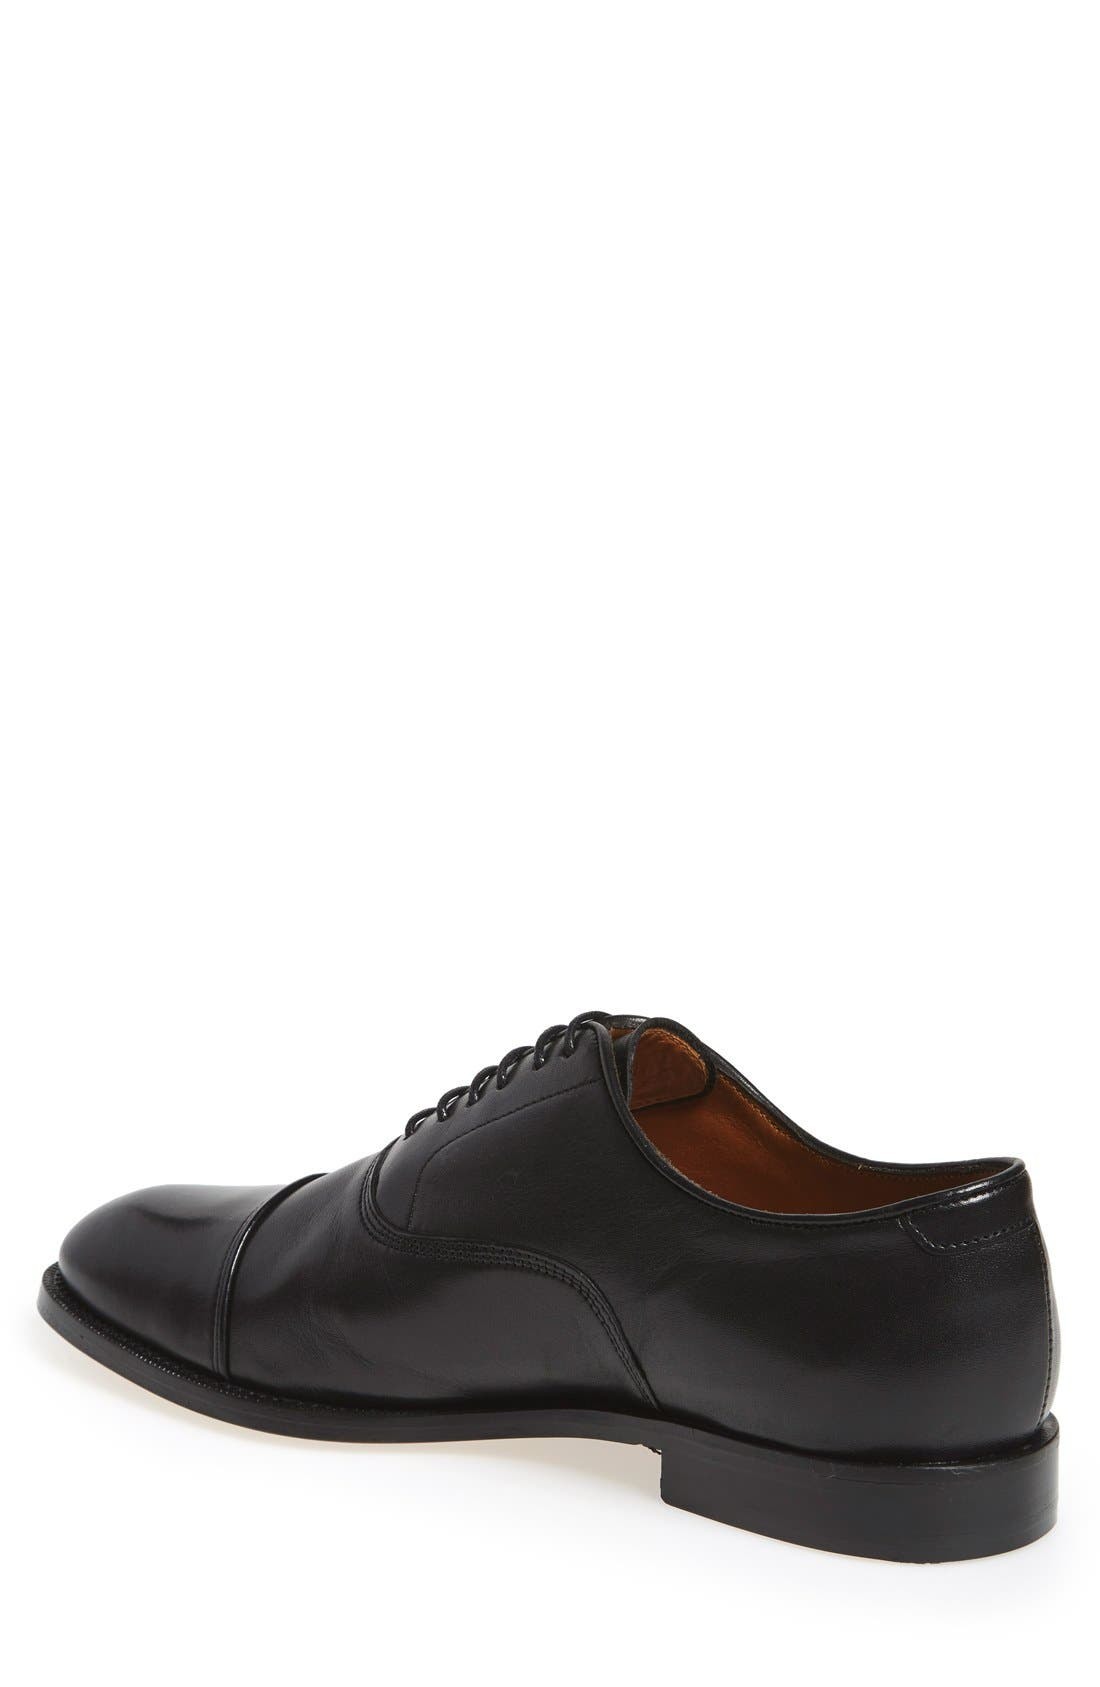 'Eeric' Cap Toe Oxford,                             Alternate thumbnail 2, color,                             BLACK LEATHER